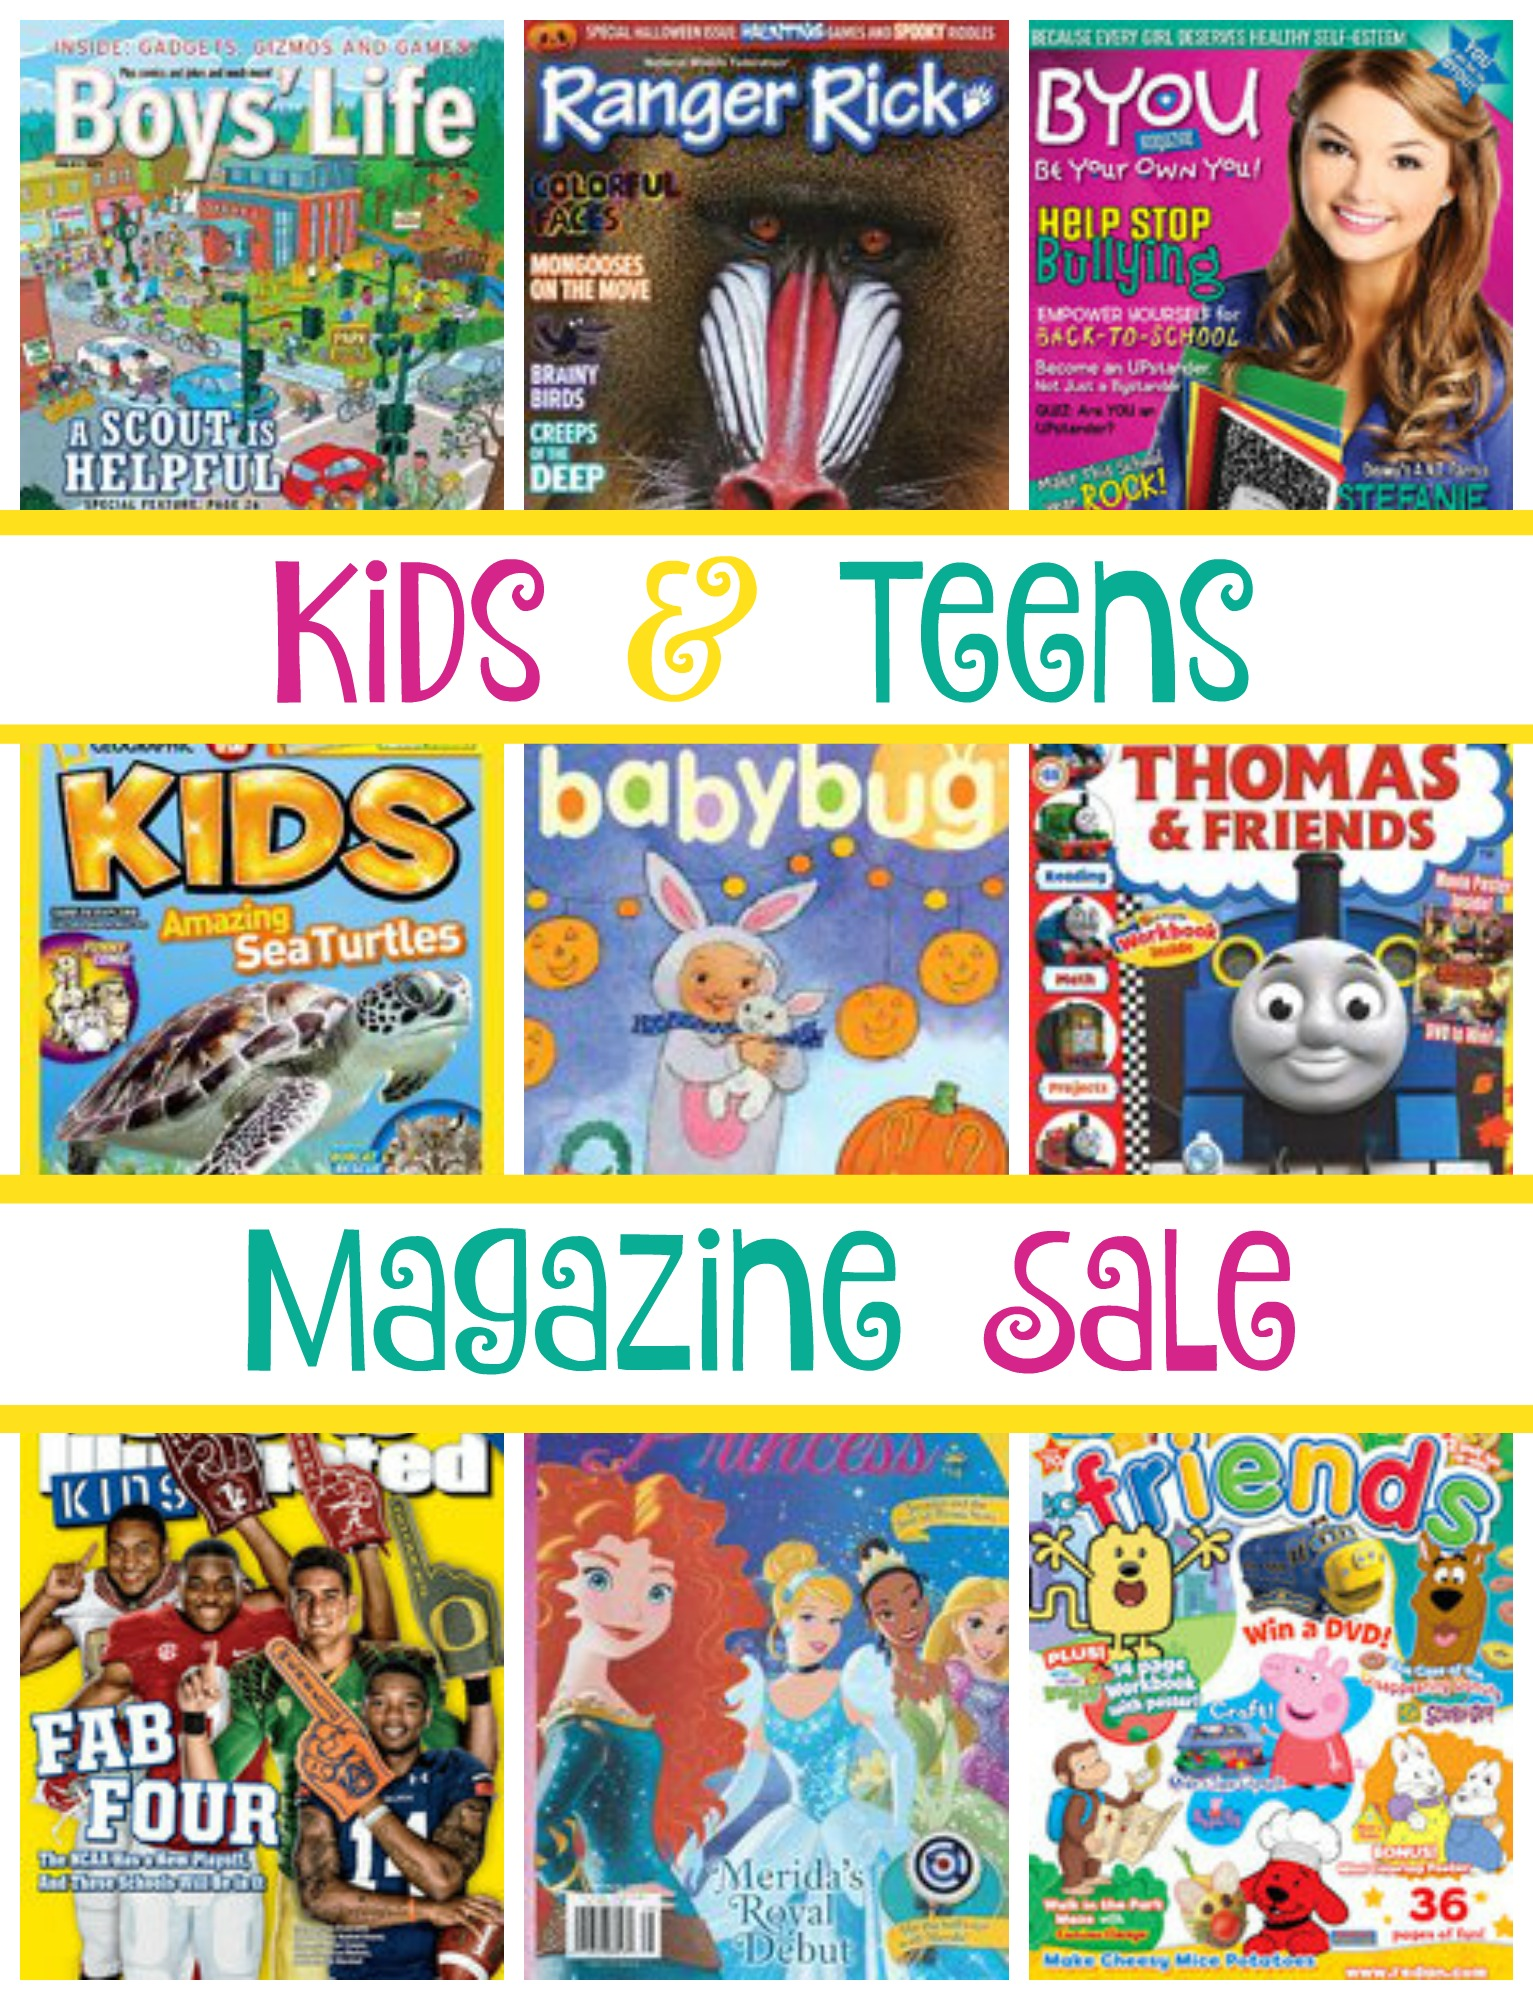 Kids & Teens Magazine Sale - Limited Time!